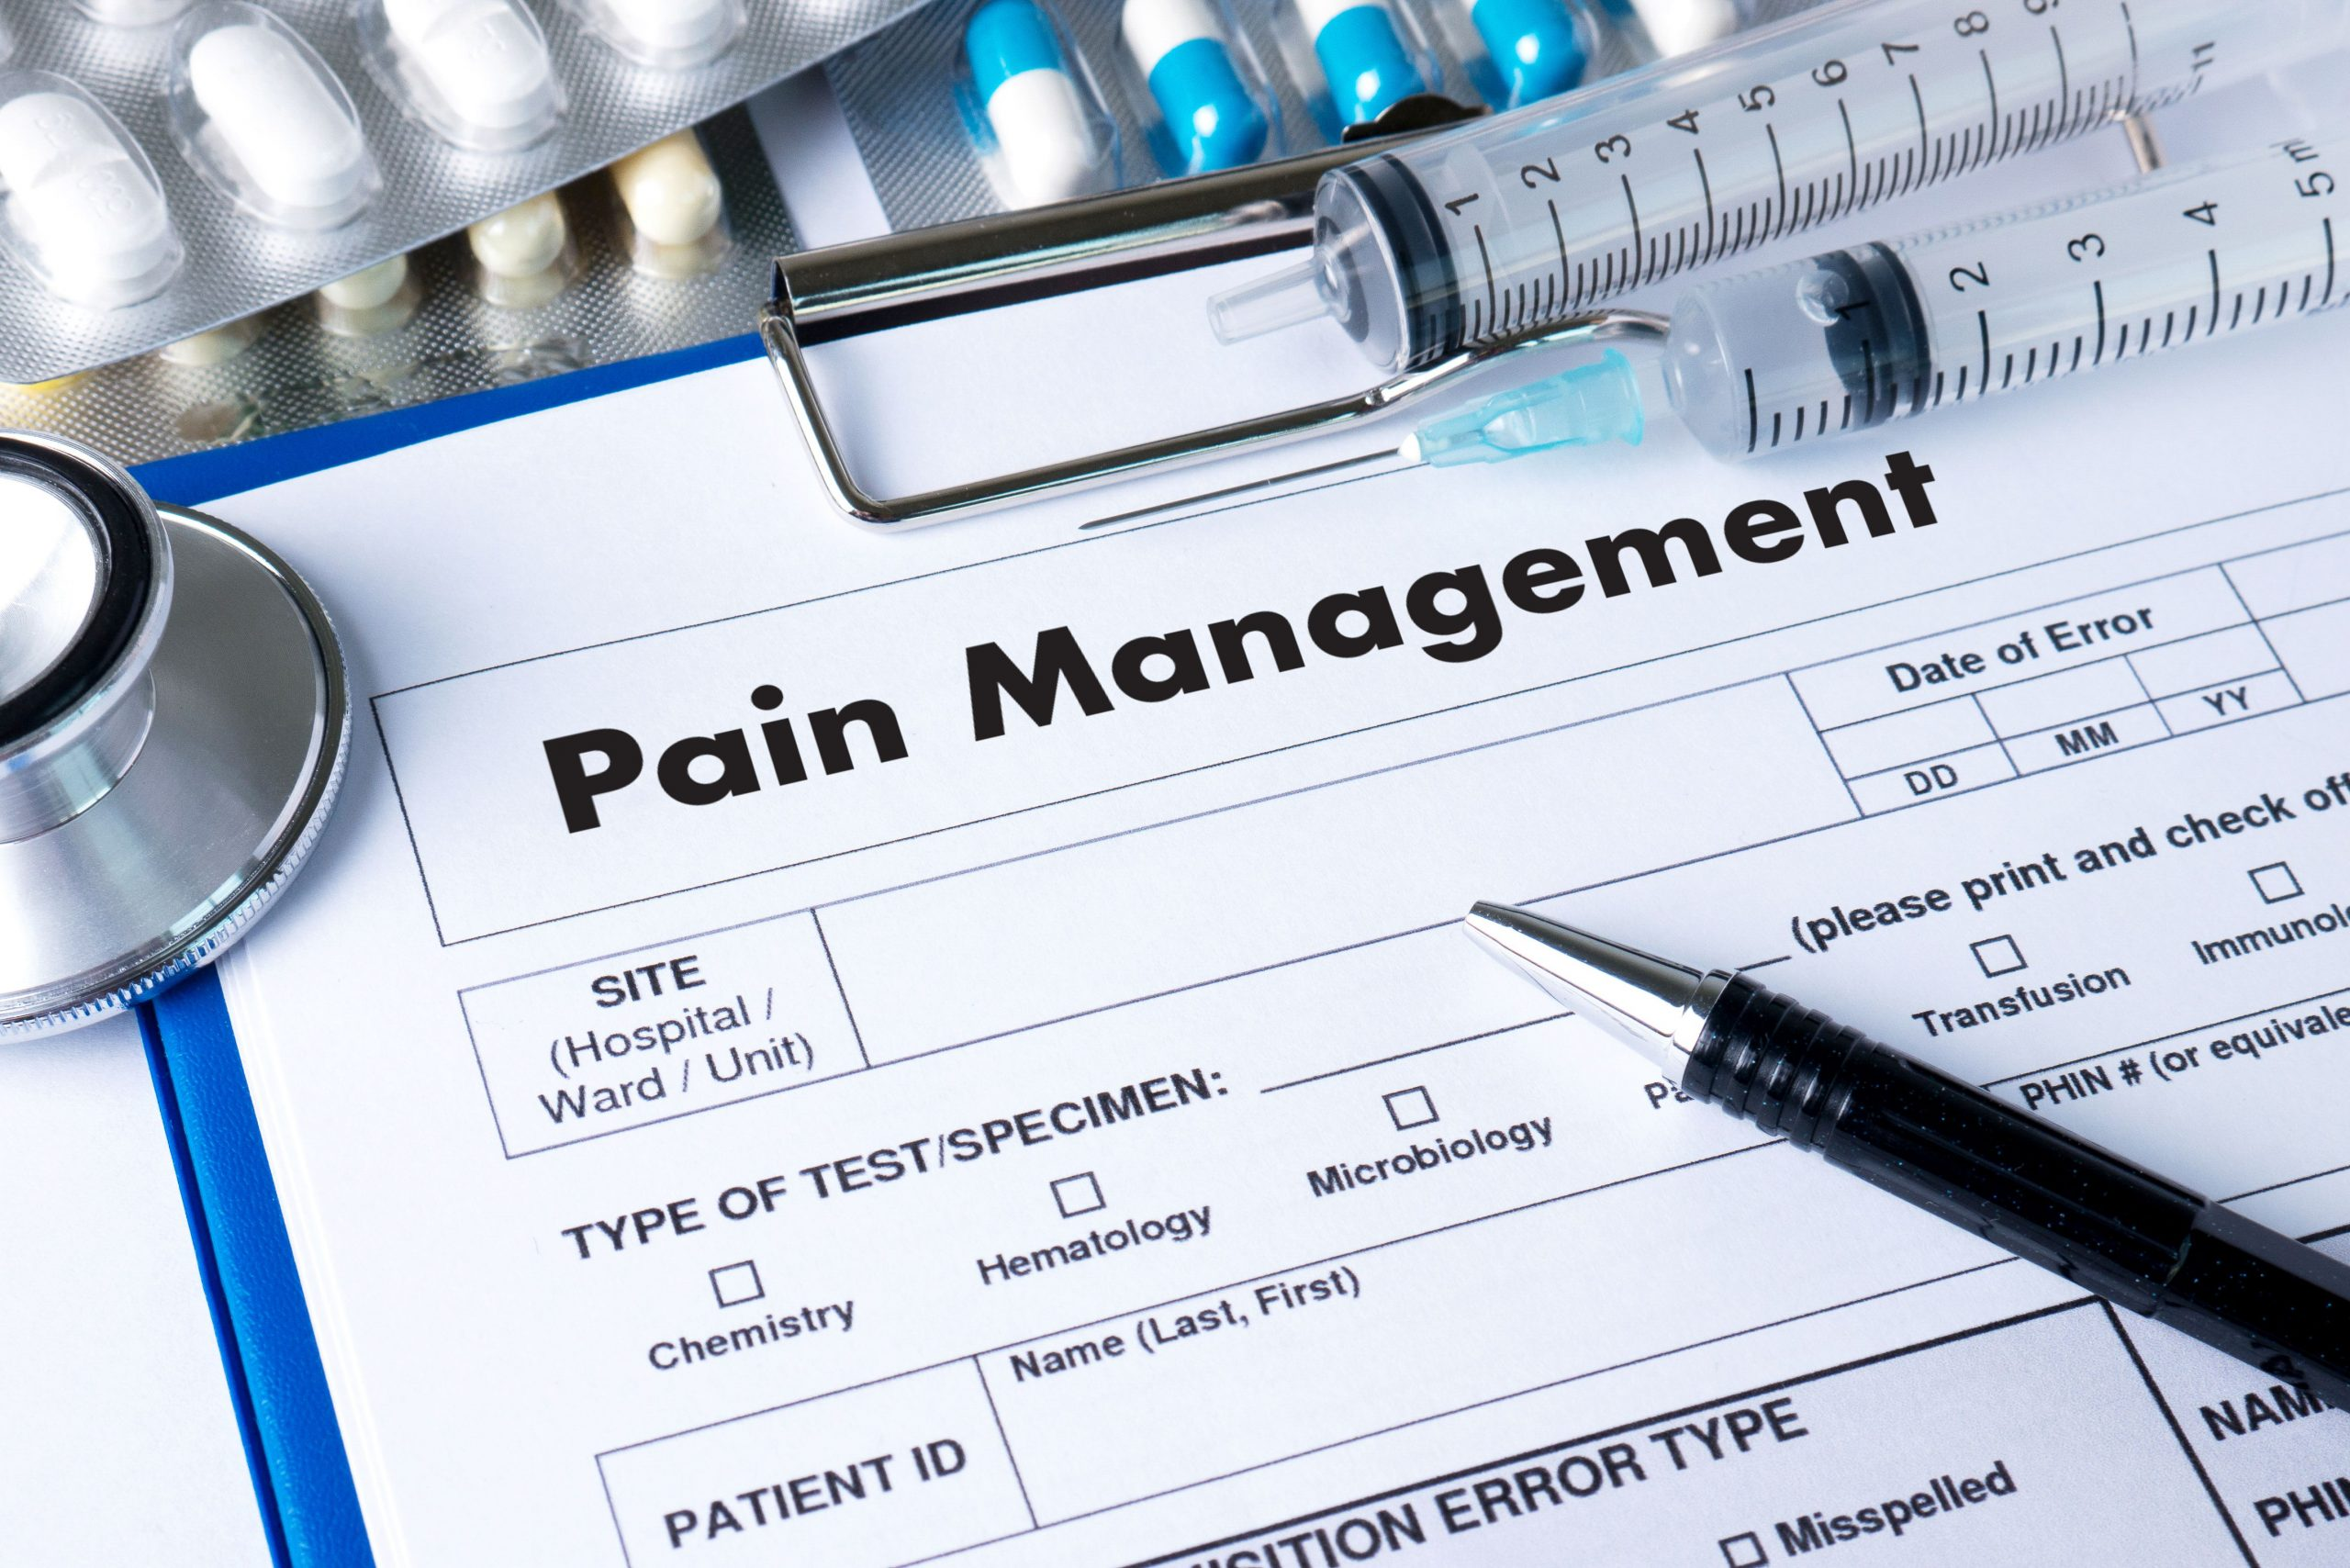 A pain management examination form to analyze pain suffering patient